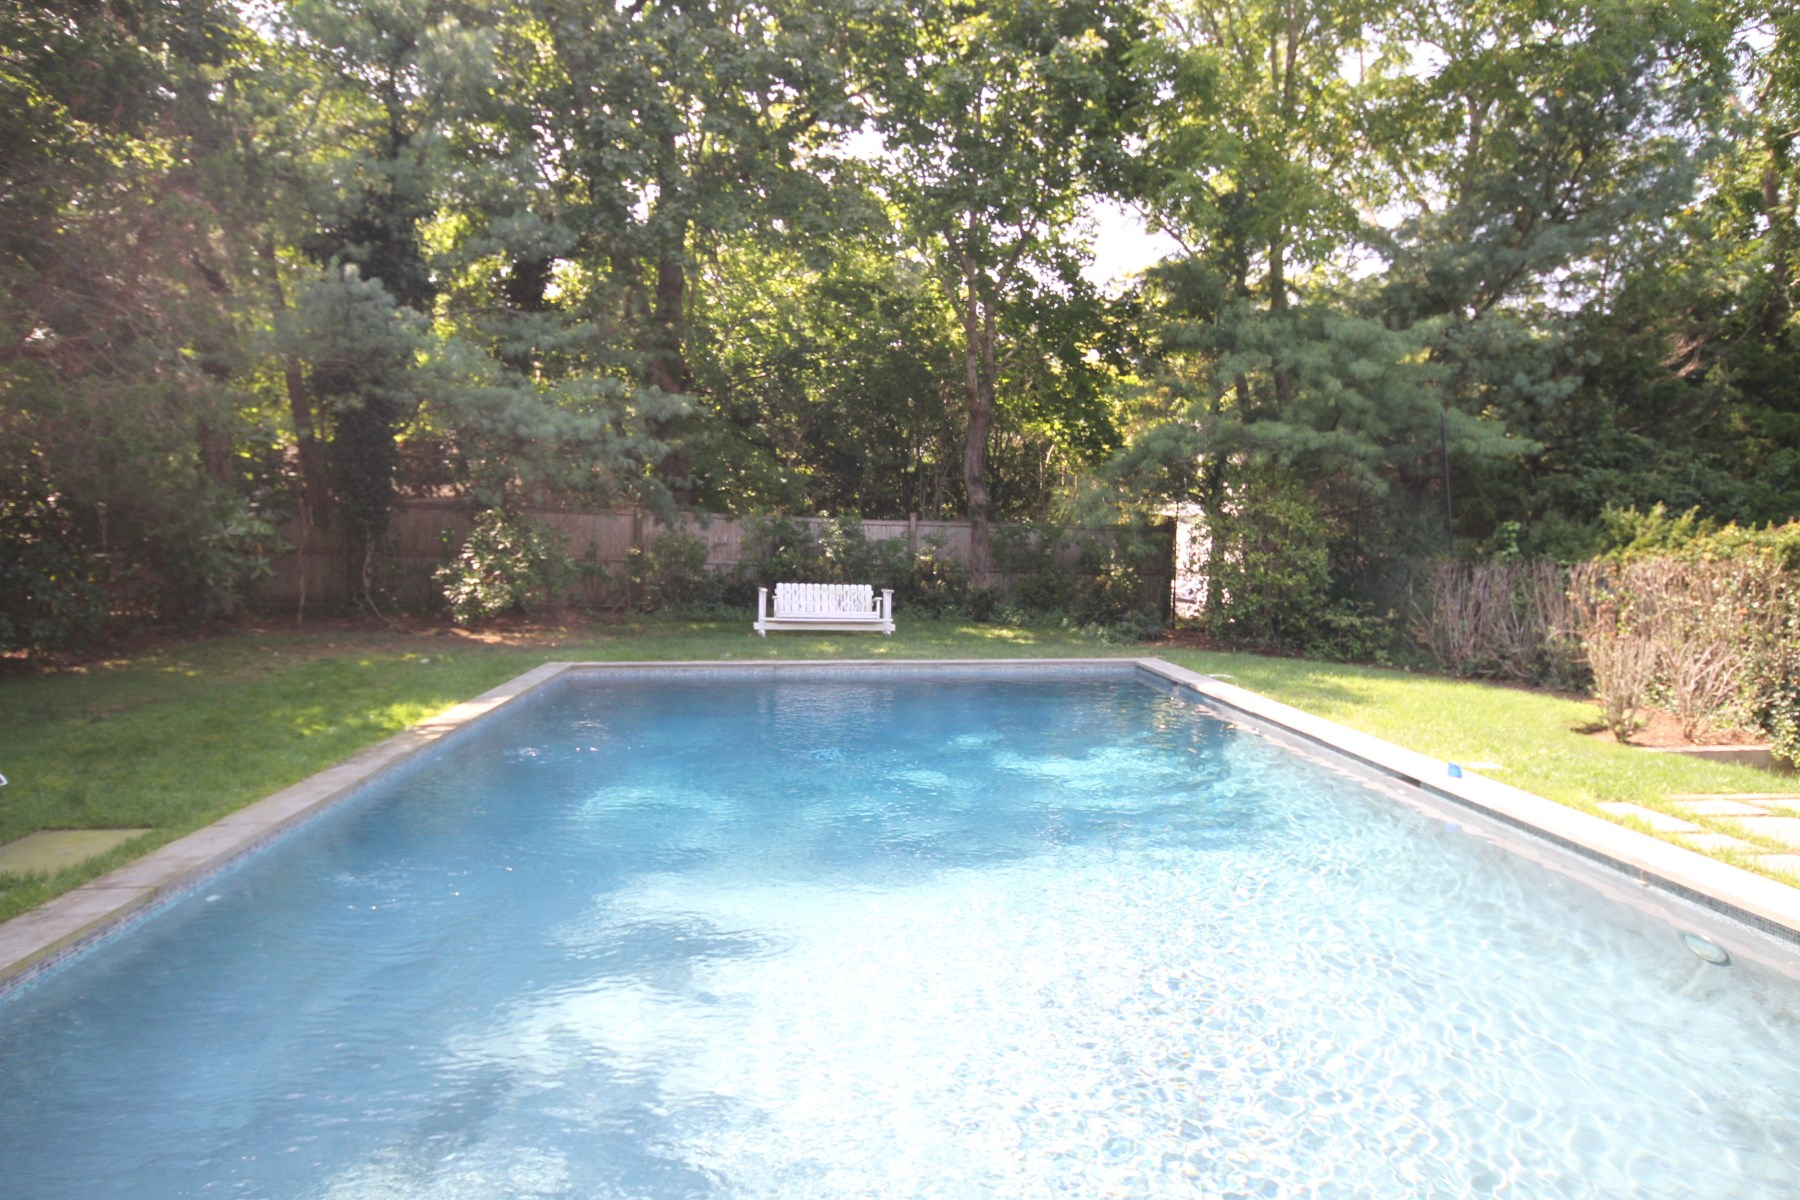 rentals property at Southampton Village - Pool, Tennis